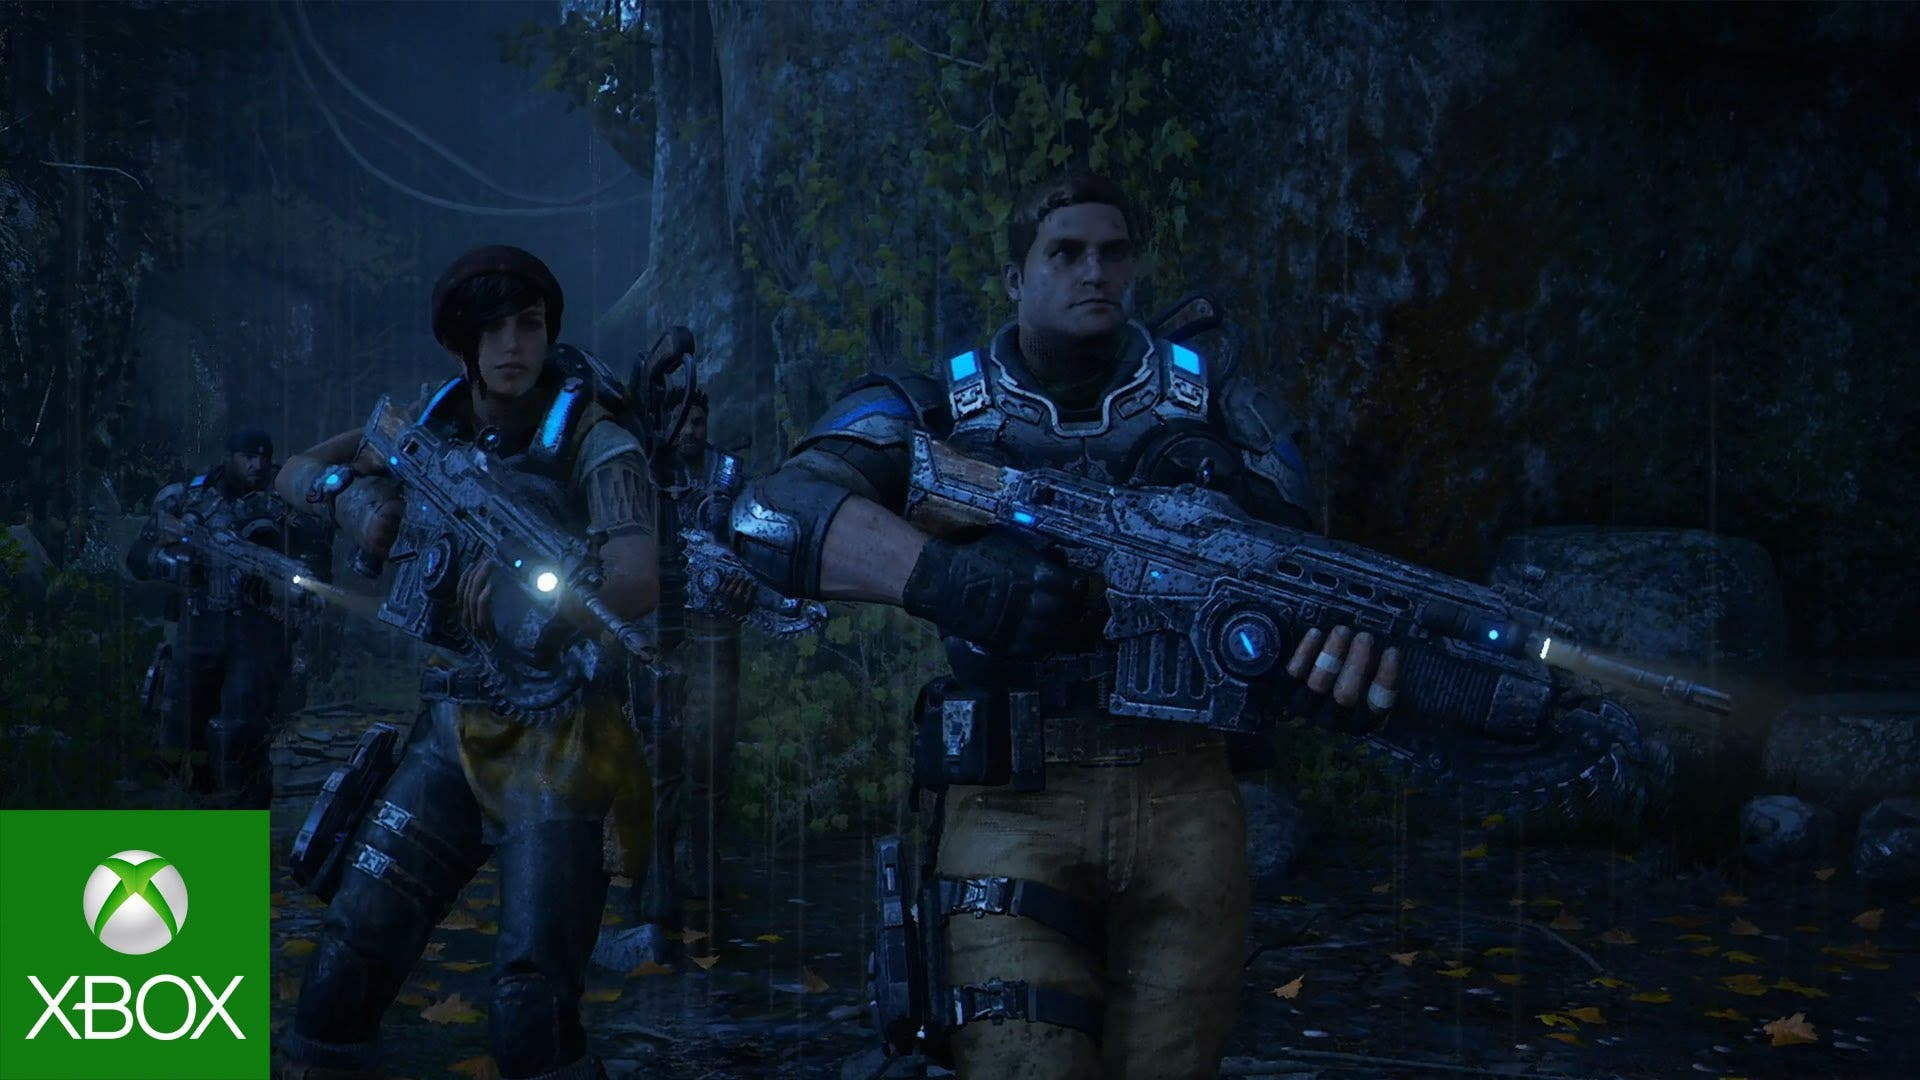 gears of war 4 campaign gameplay